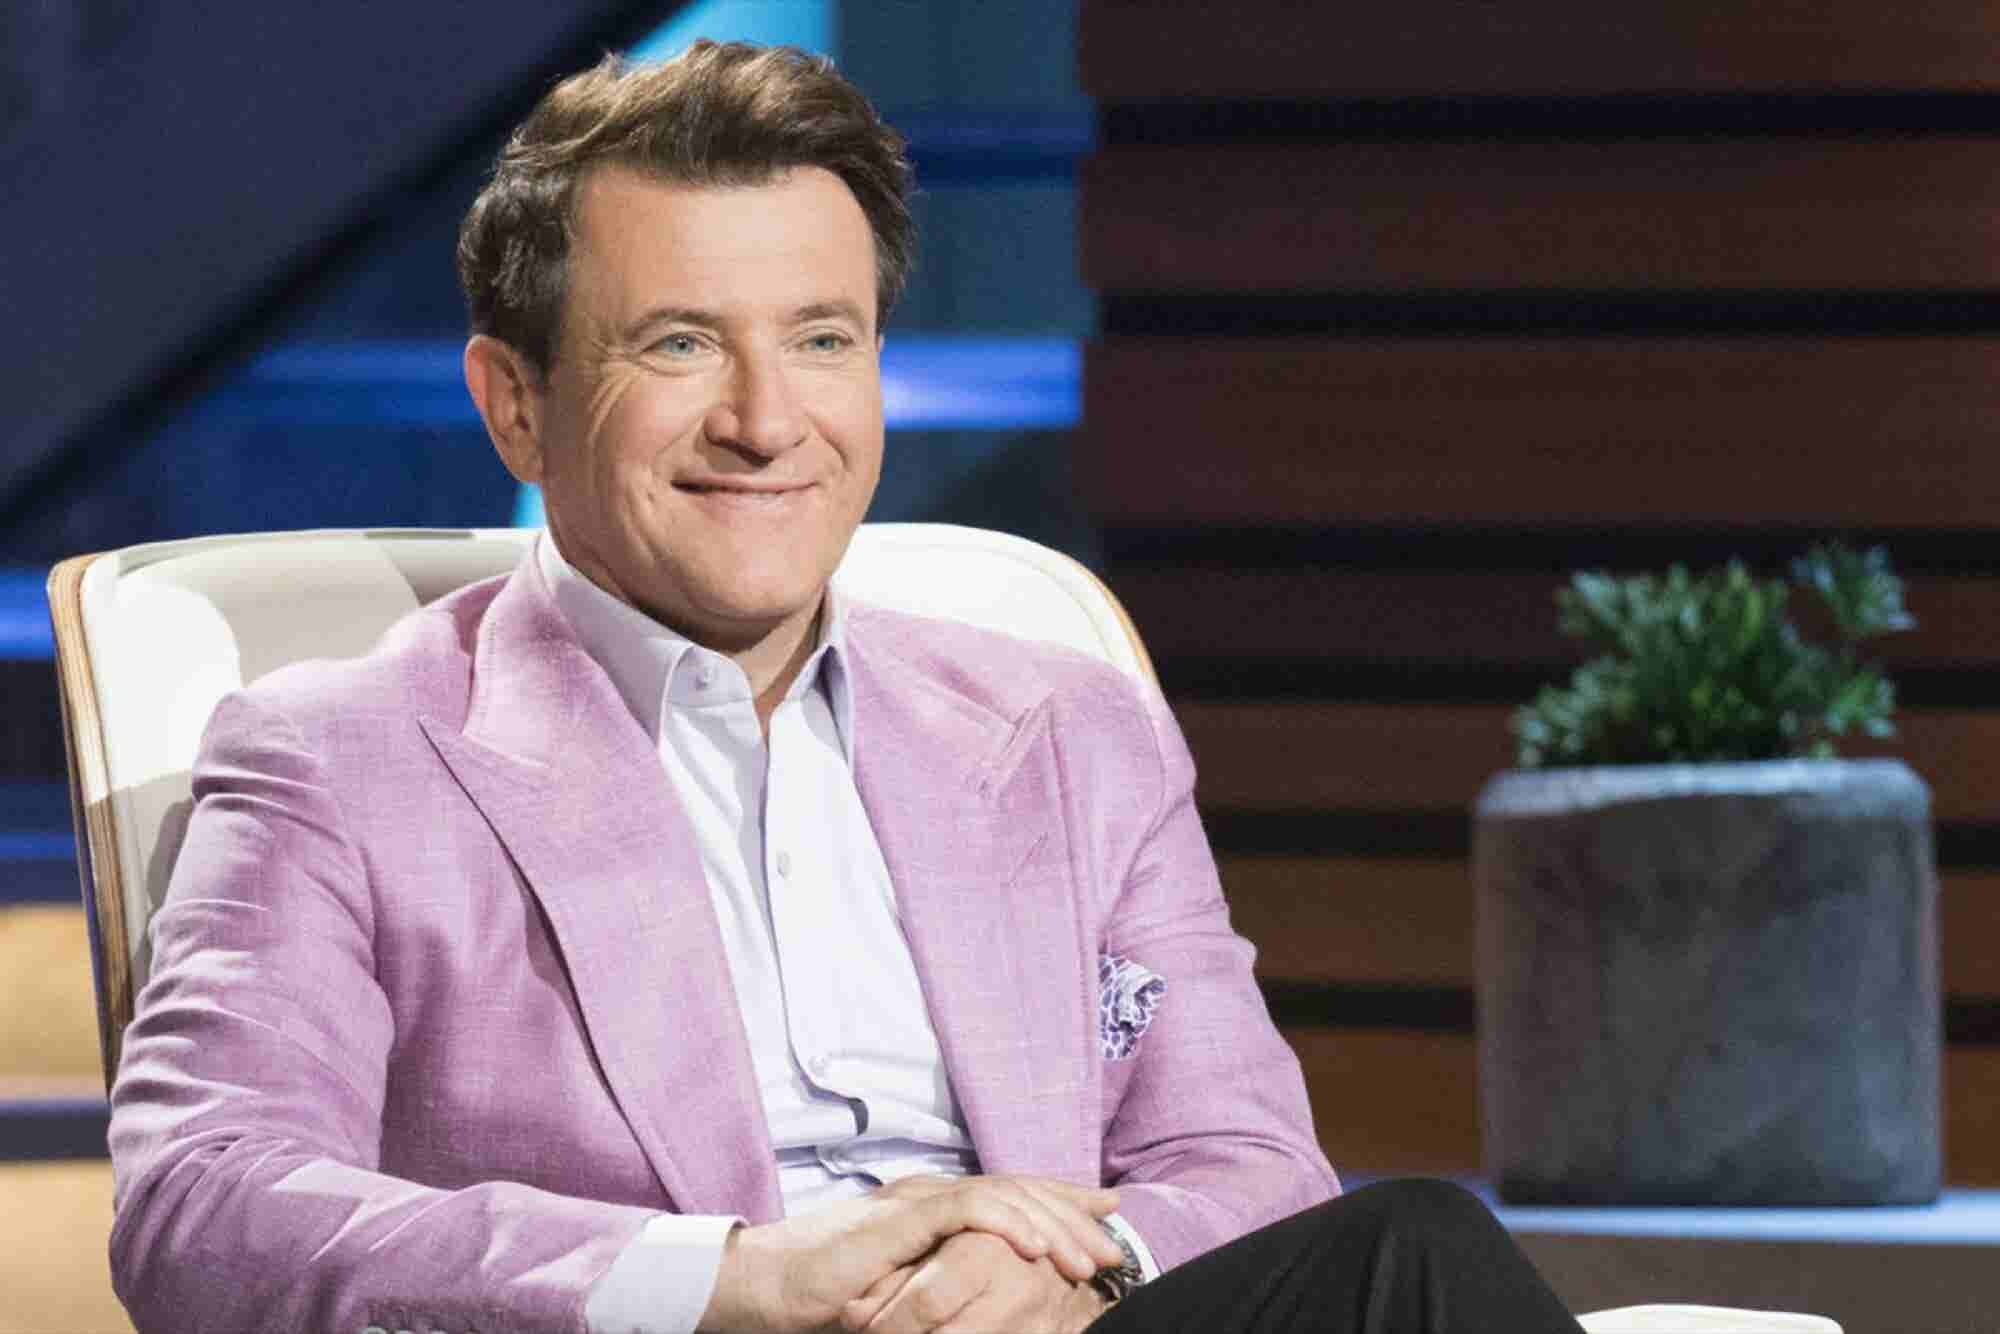 Robert Herjavec on Entrepreneurship, Working with Inventive Kids and Bringing Prototypes to Life